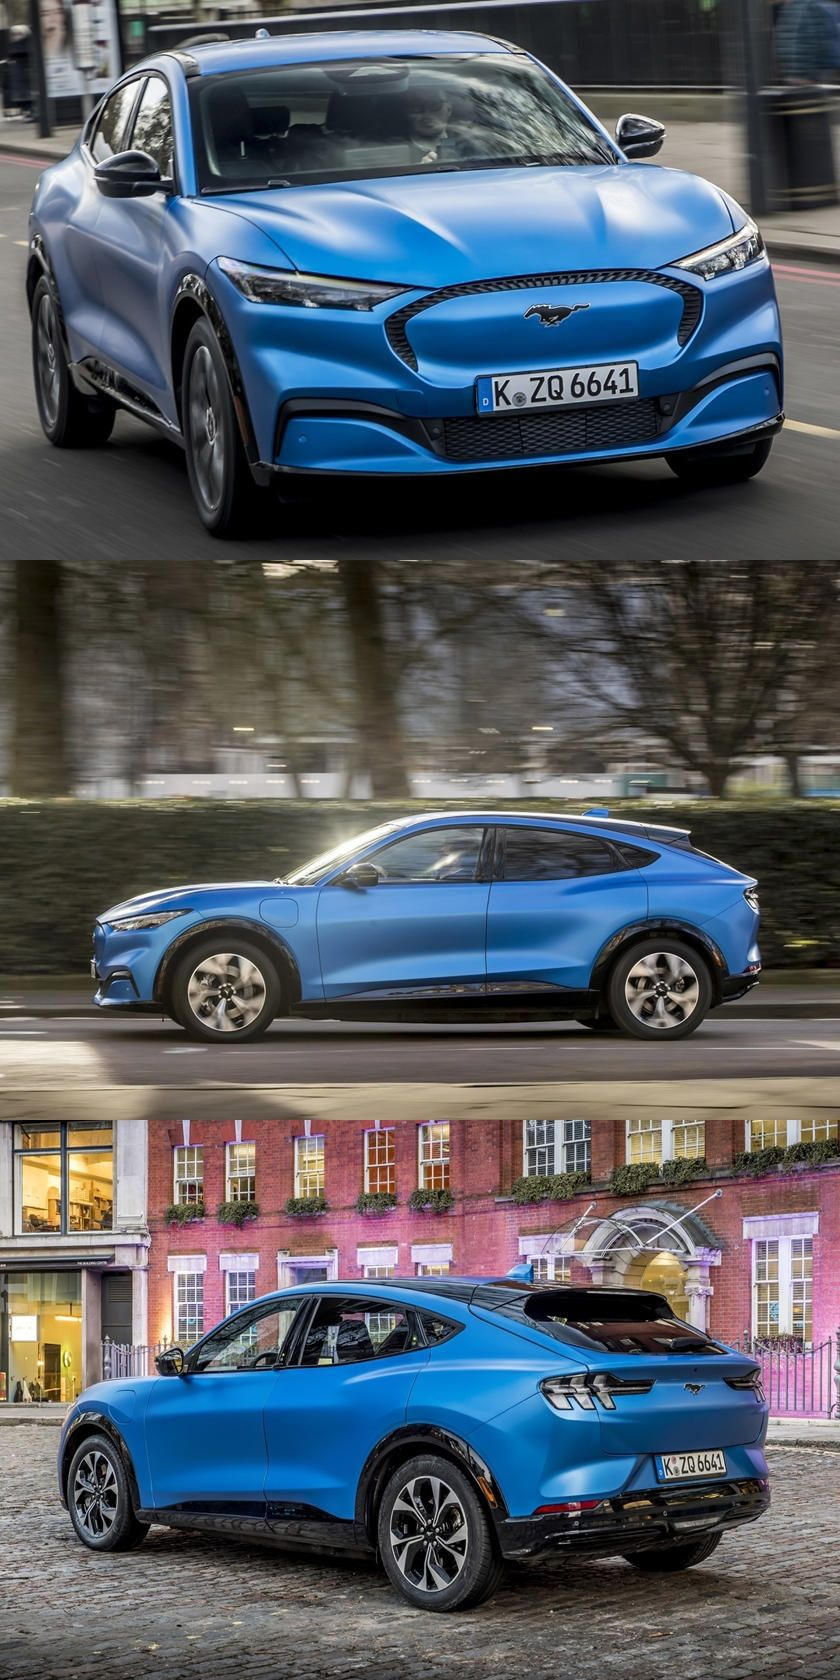 Ford Mustang Mach E Is Changing The Rules Yet Again In 2020 Ford Mustang Mustang Car Buying